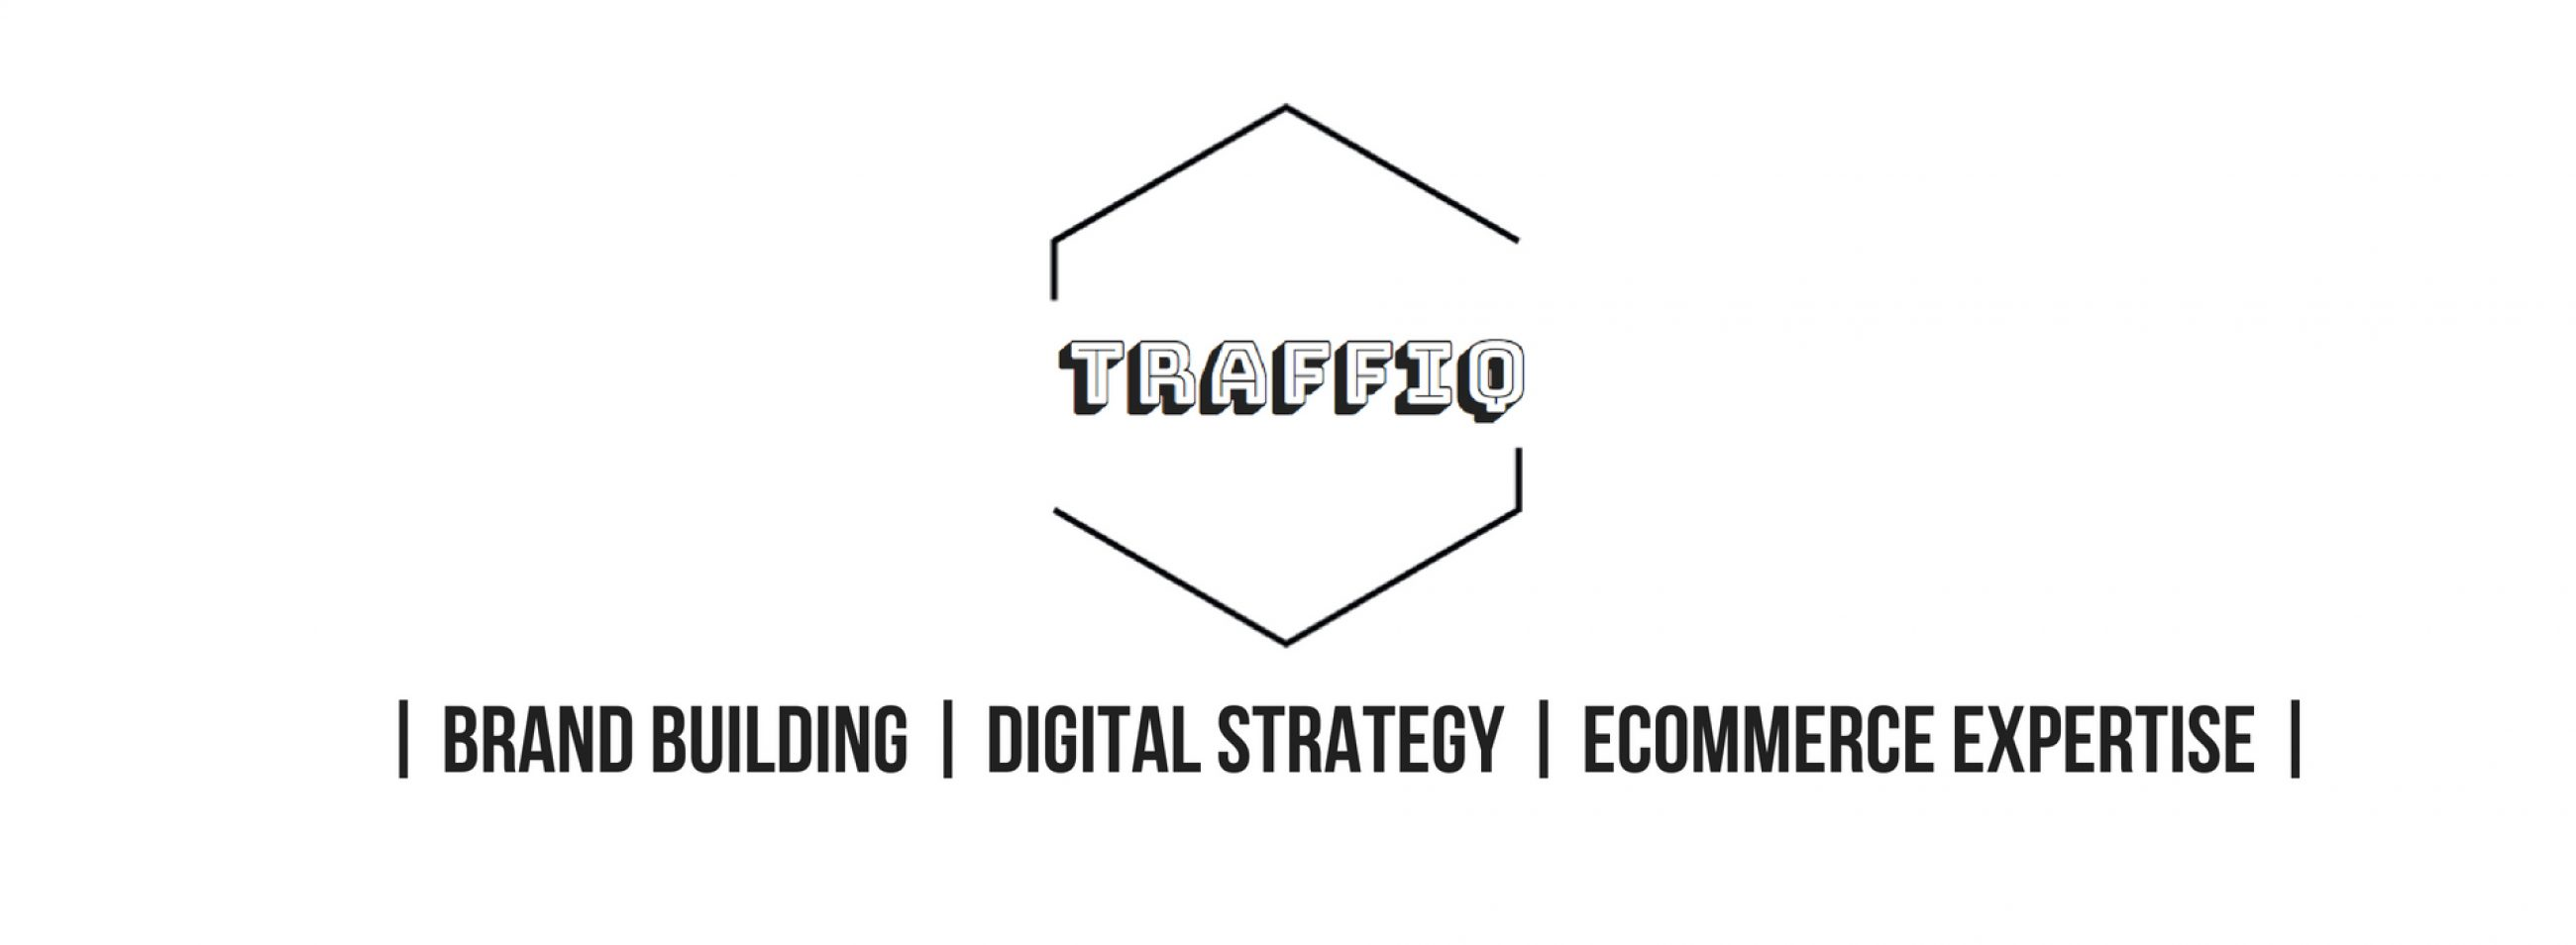 cropped-brand-building-digital-strategy-ecommerce-expertise.jpg